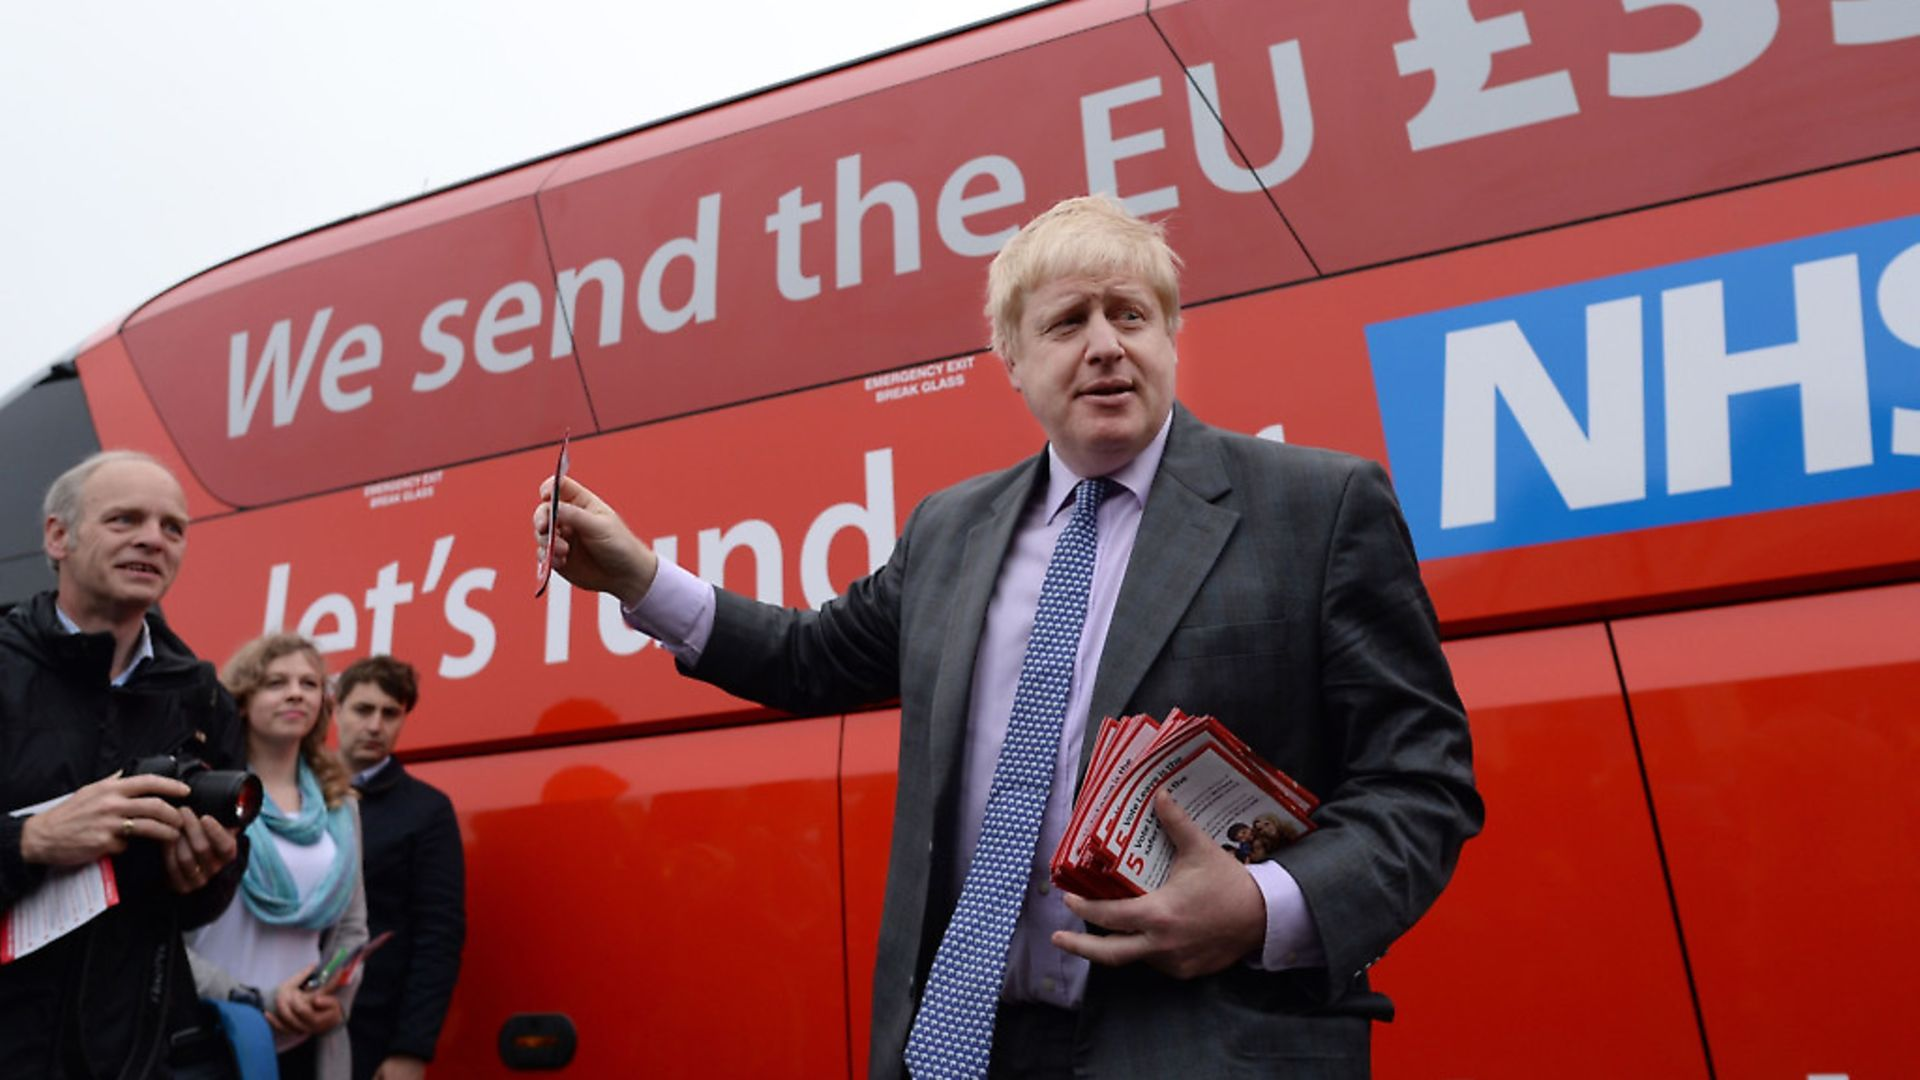 Boris Johnson before he boards the Vote Leave campaign bus in Truro, Cornwall ahead of the EU referendum. Photo: Stefan Rousseau/PA. - Credit: PA Archive/PA Images